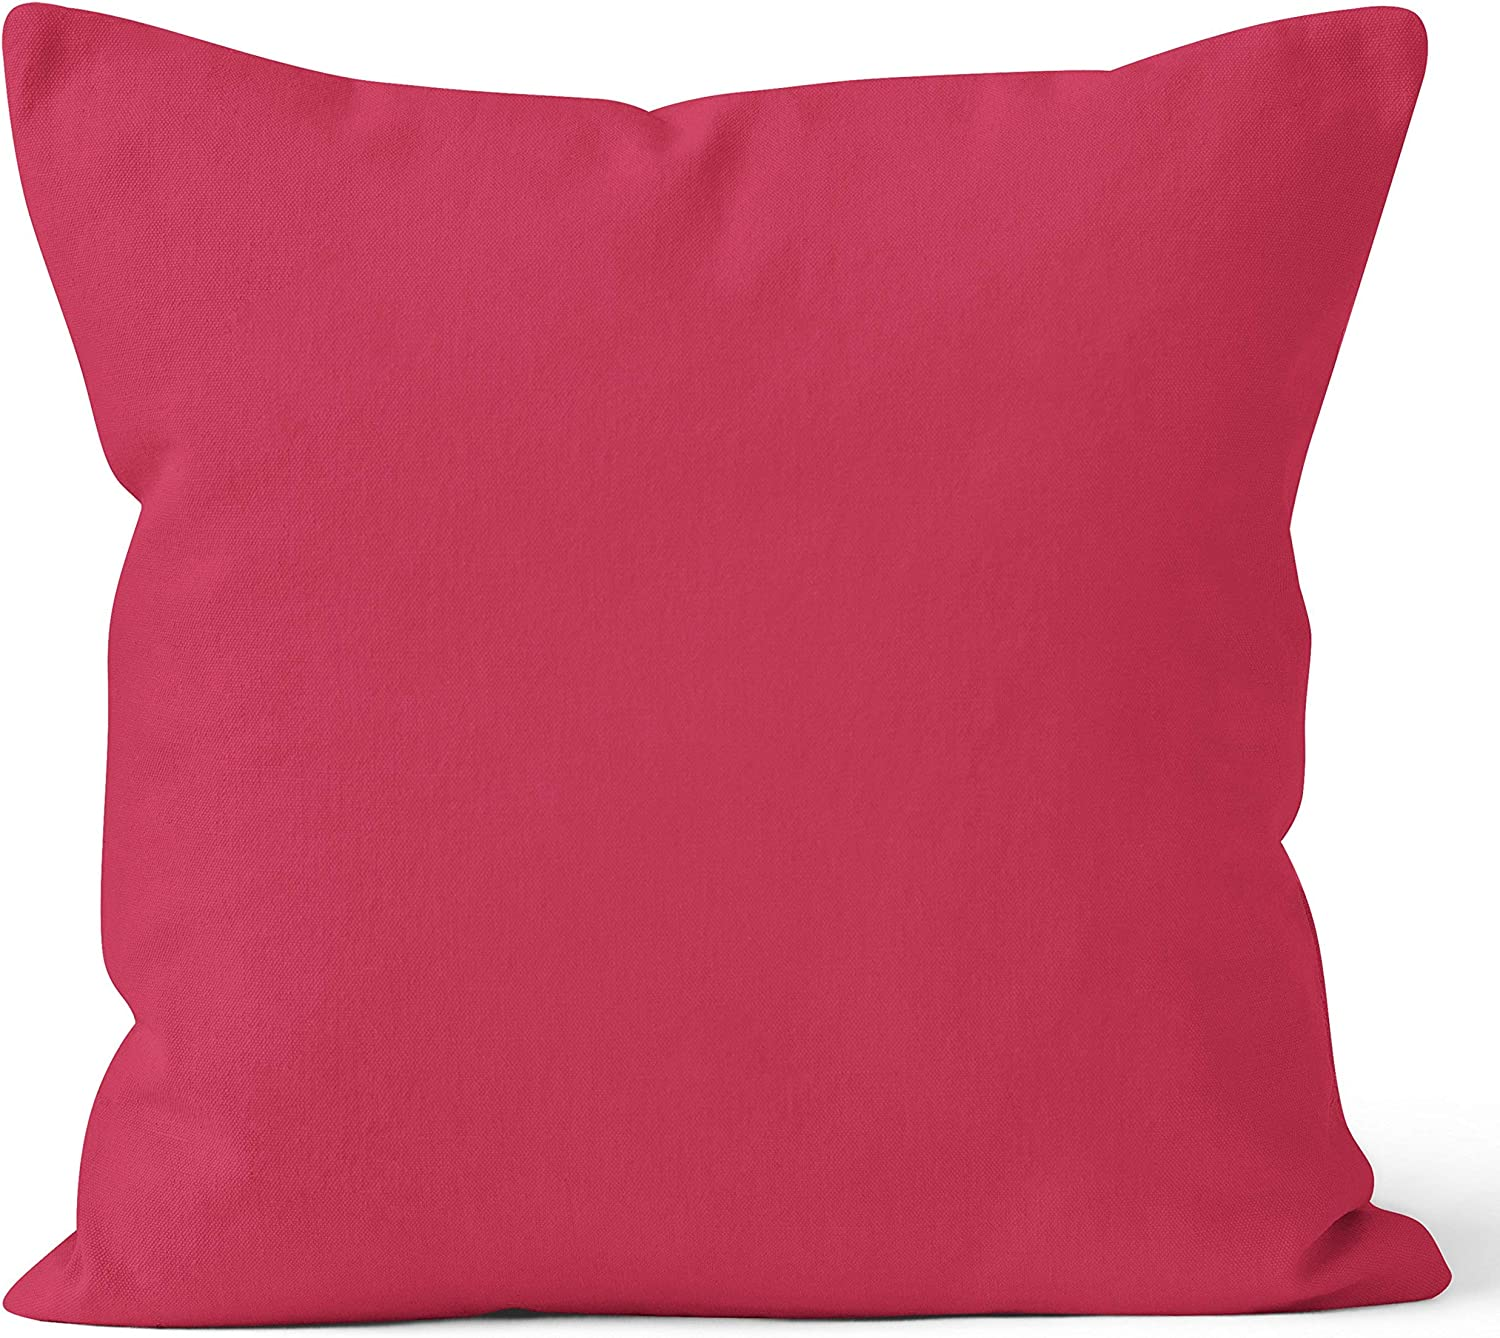 Encasa Homes Housses de Coussin Lot de 2 50 x 50 cm - Rose Fuchsia Doux Coton Toile Teint Rectangulaire Taie Oreillers Color/é Decoratif pour Maison Decor Salon Chambre Canap/é Lavable import/é